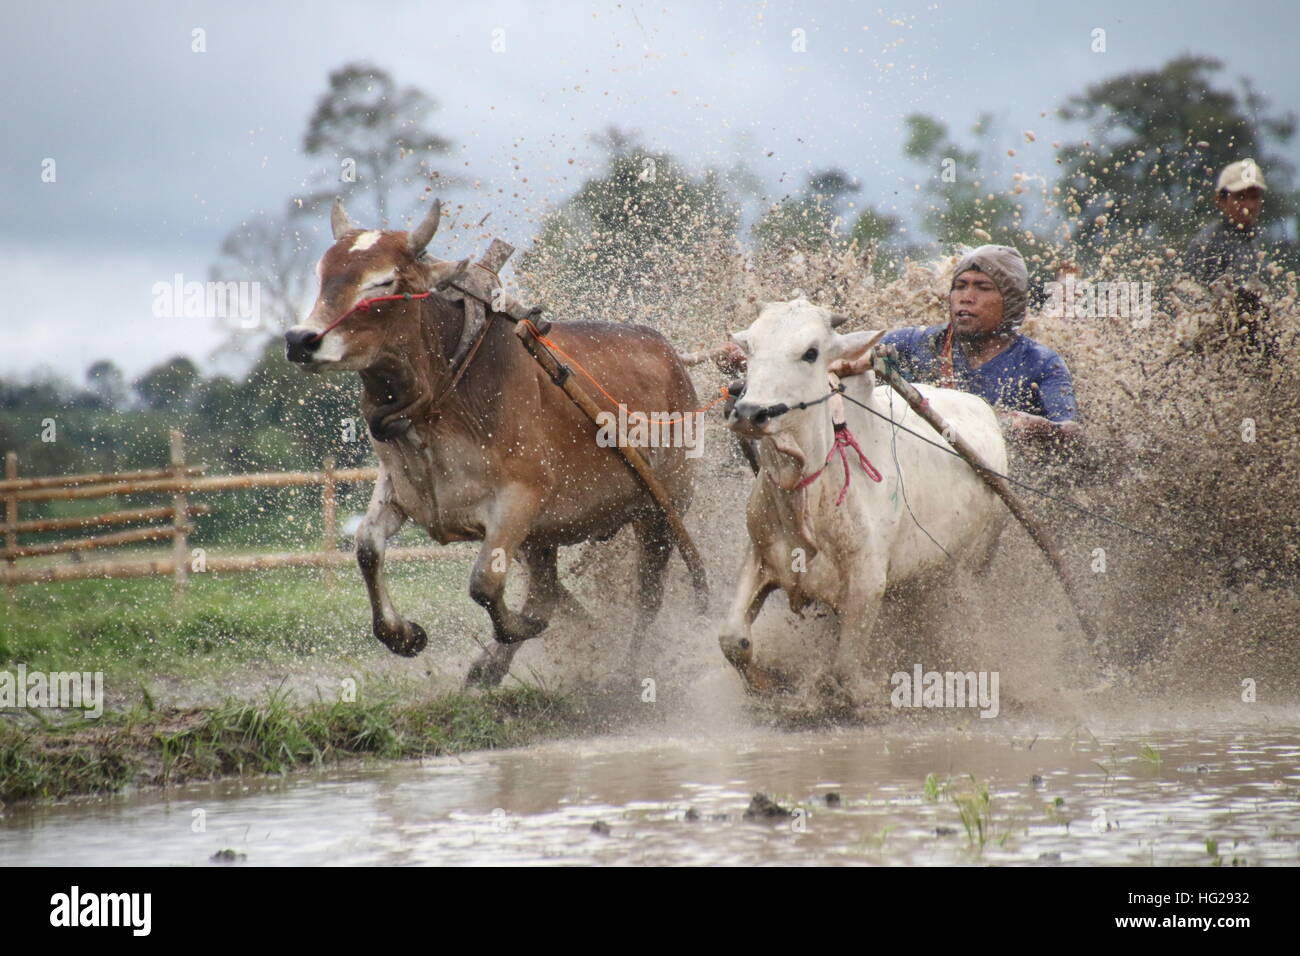 Traditional Bull Racing in Indonesia 26